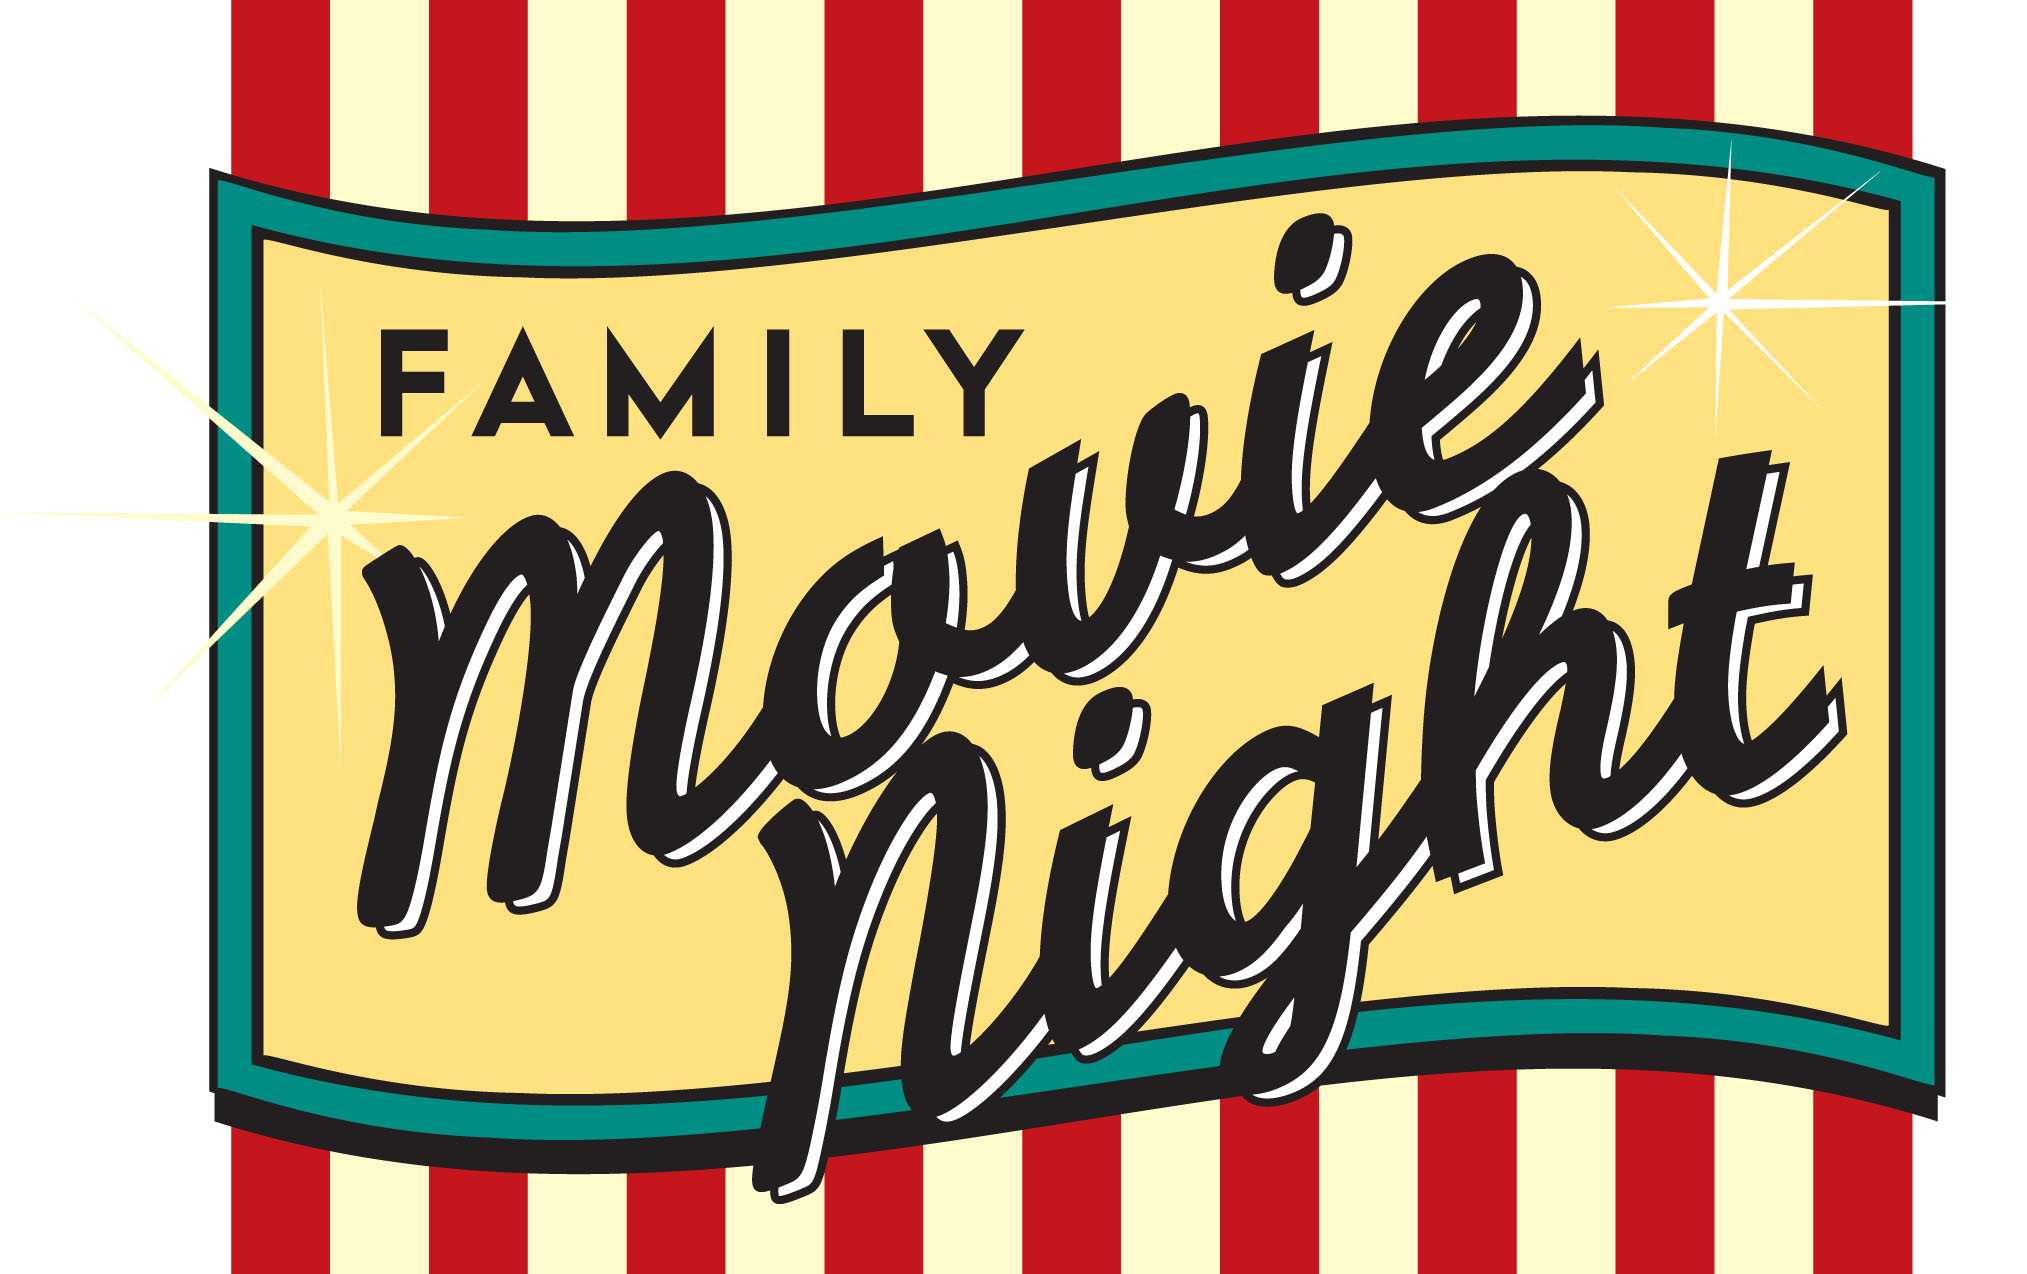 Coming to the movies clipart svg royalty free stock Free Movie Marquee Cliparts, Download Free Clip Art, Free Clip Art ... svg royalty free stock